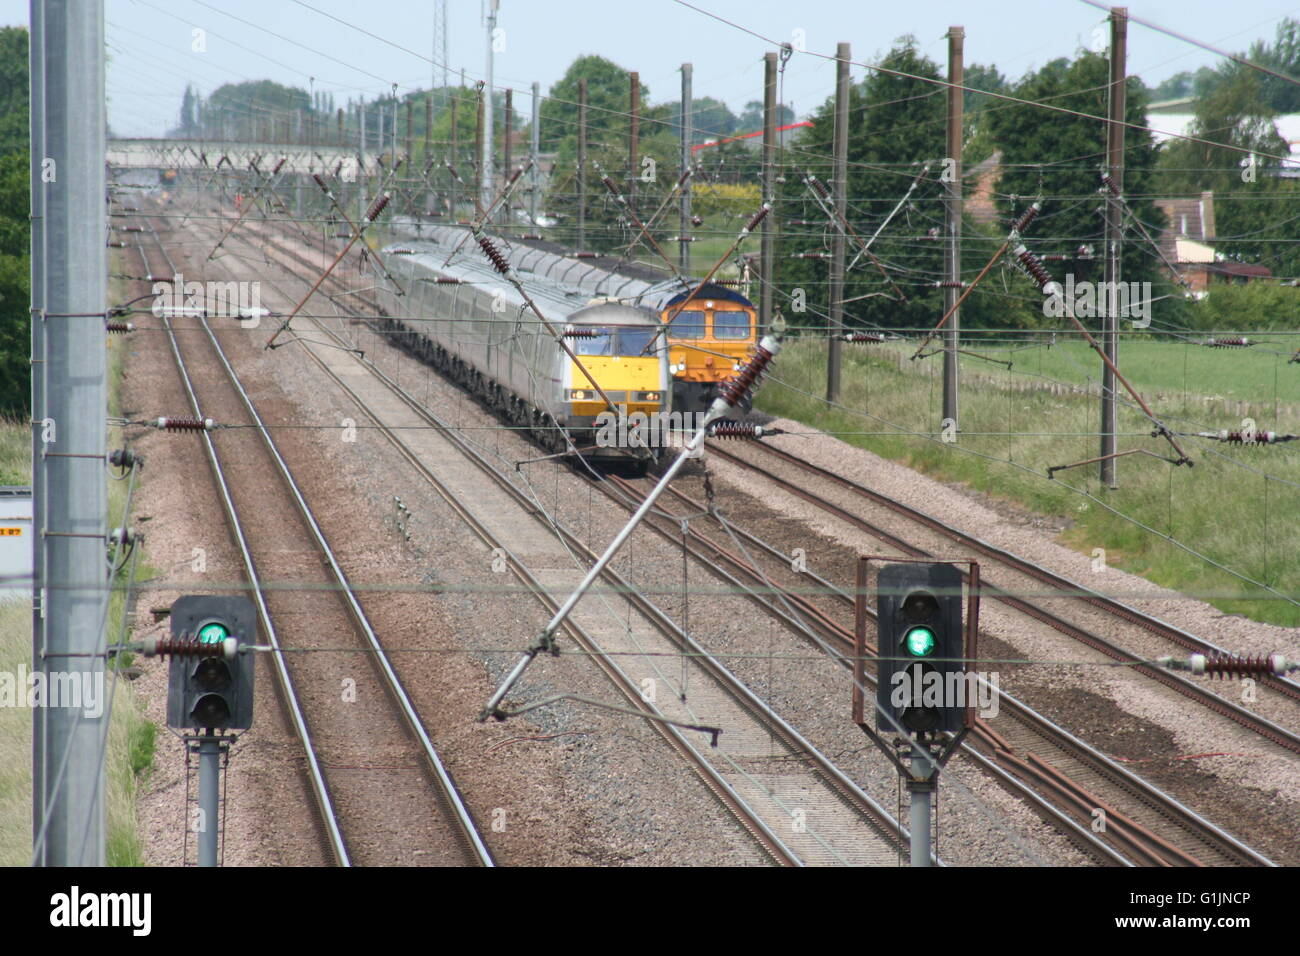 East Coast Main Line Passenger and Freight Trains head south at Skelton ECML - Stock Image